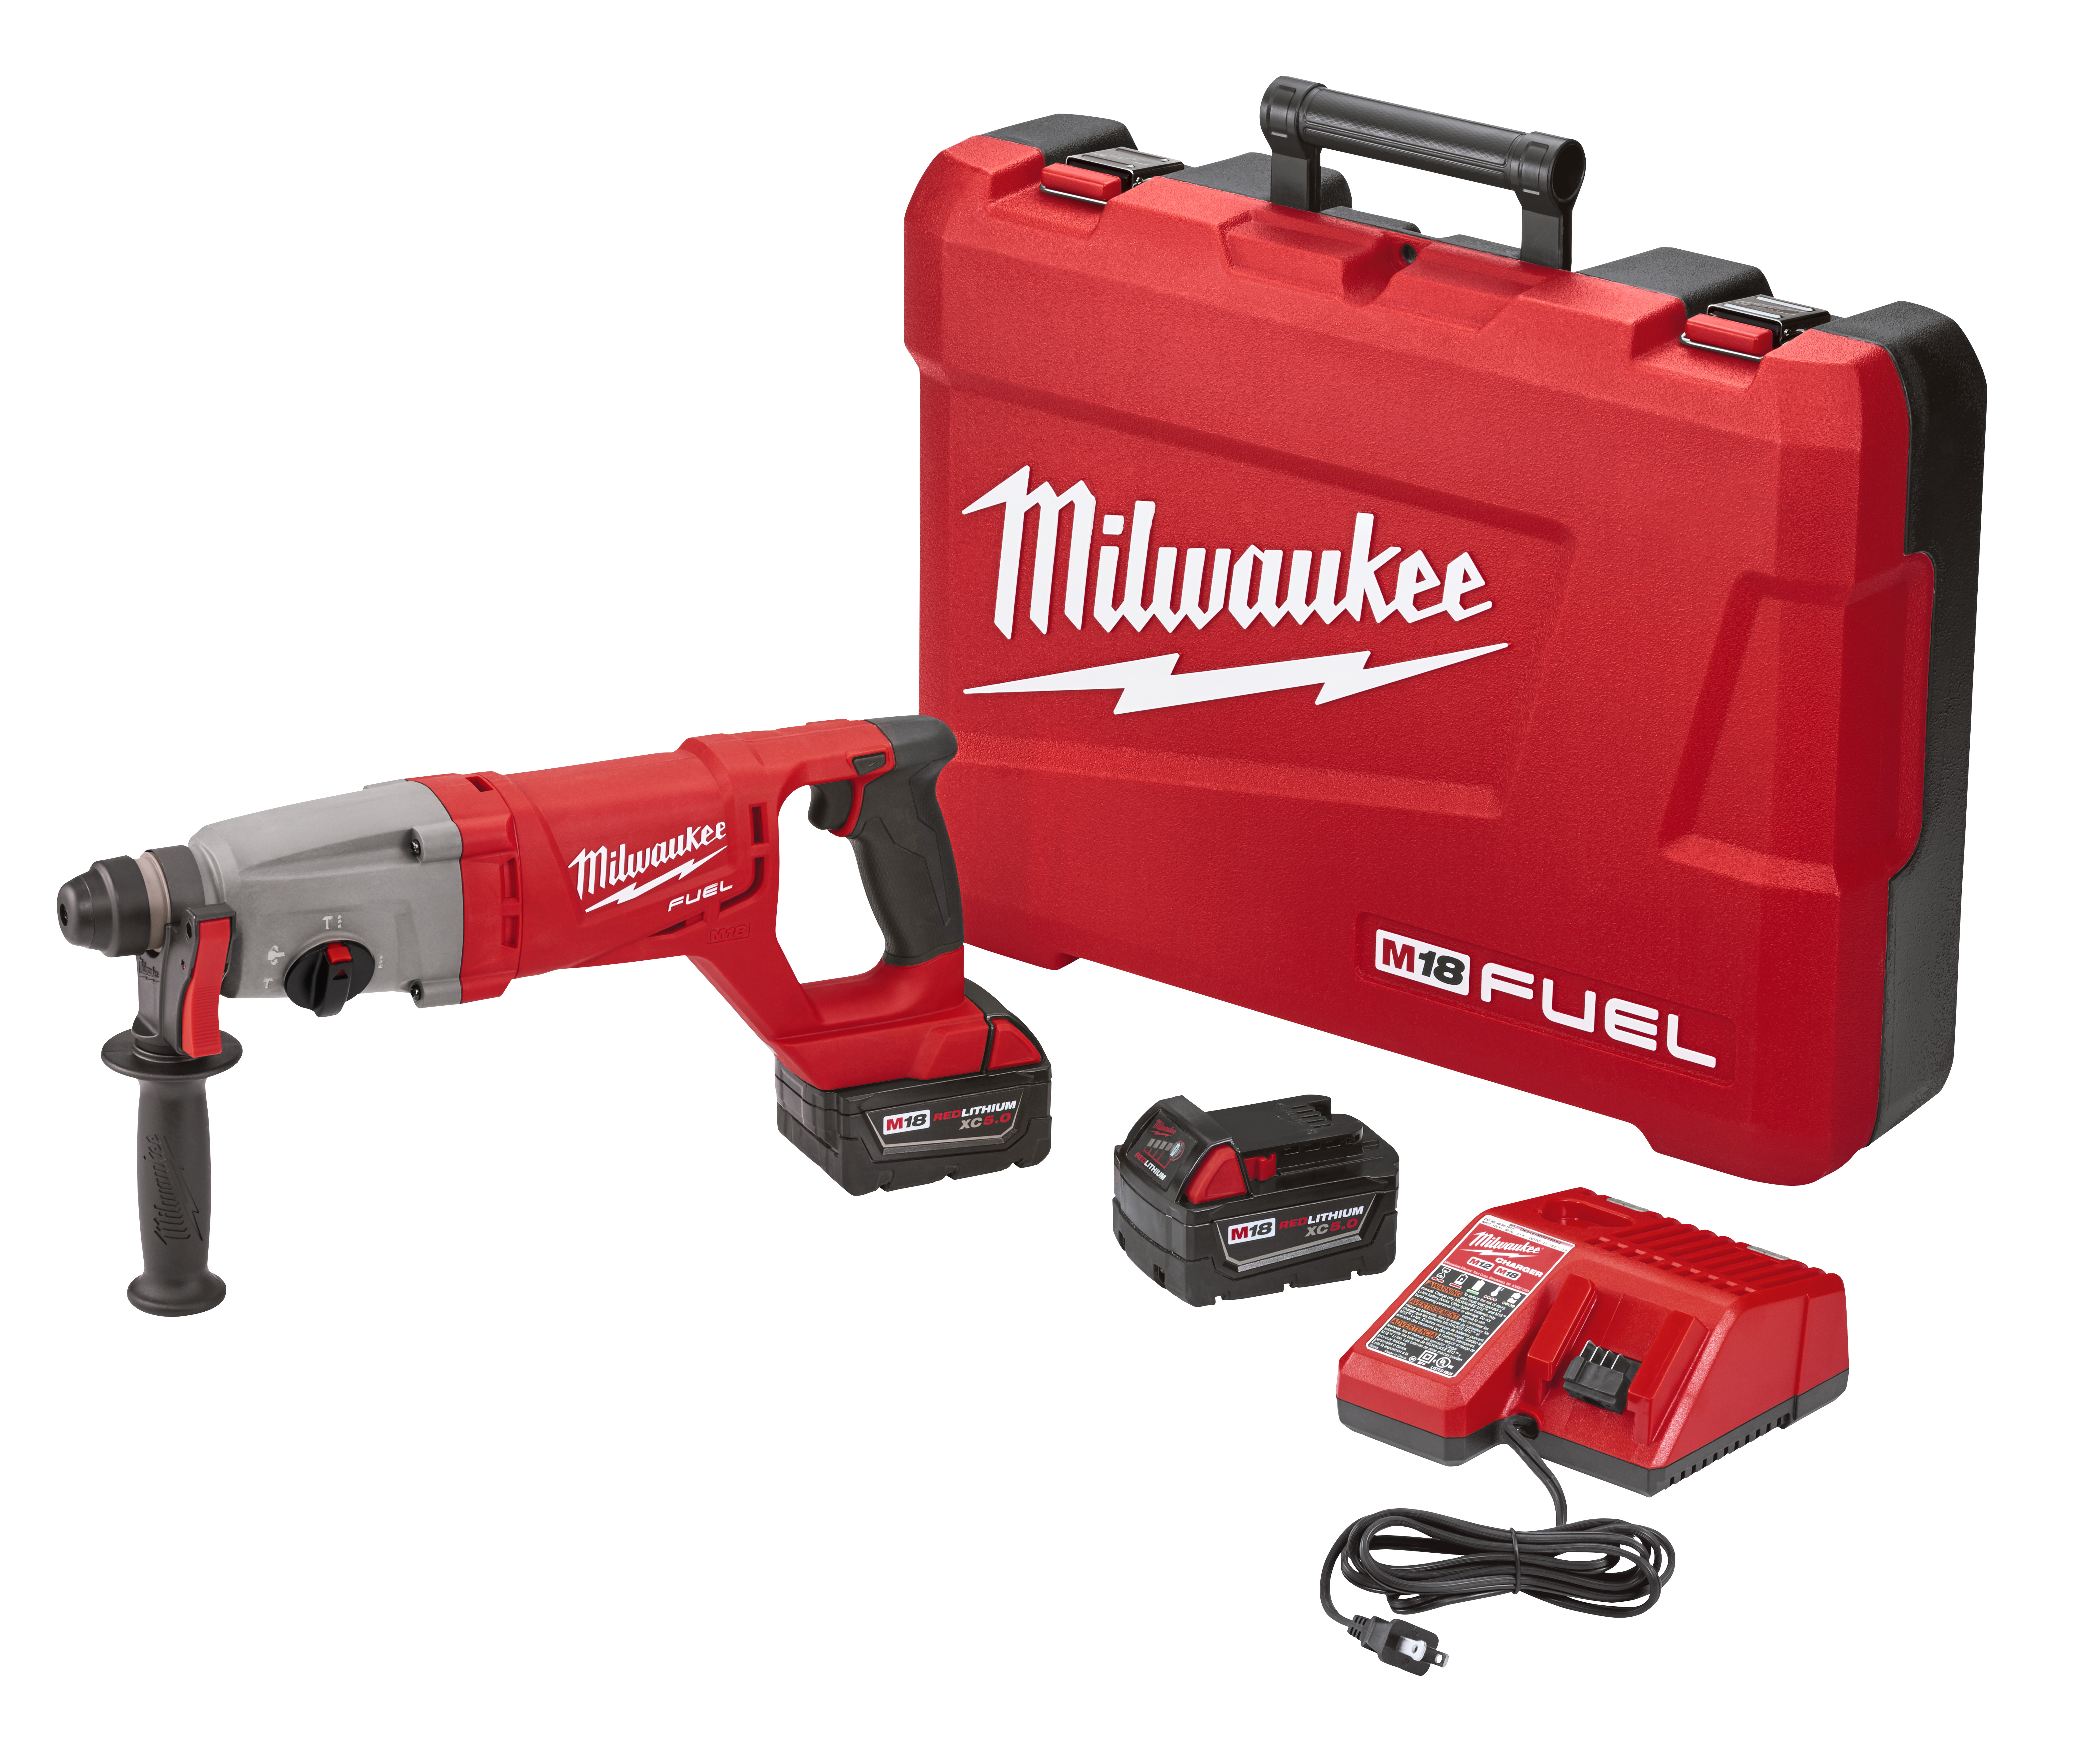 Milwaukee® M18™ FUEL™ 2713-22 Cordless Rotary Hammer Kit, 1 in SDS Plus® Chuck, 18 VAC, 0 to 1500 rpm No-Load, Lithium-Ion Battery